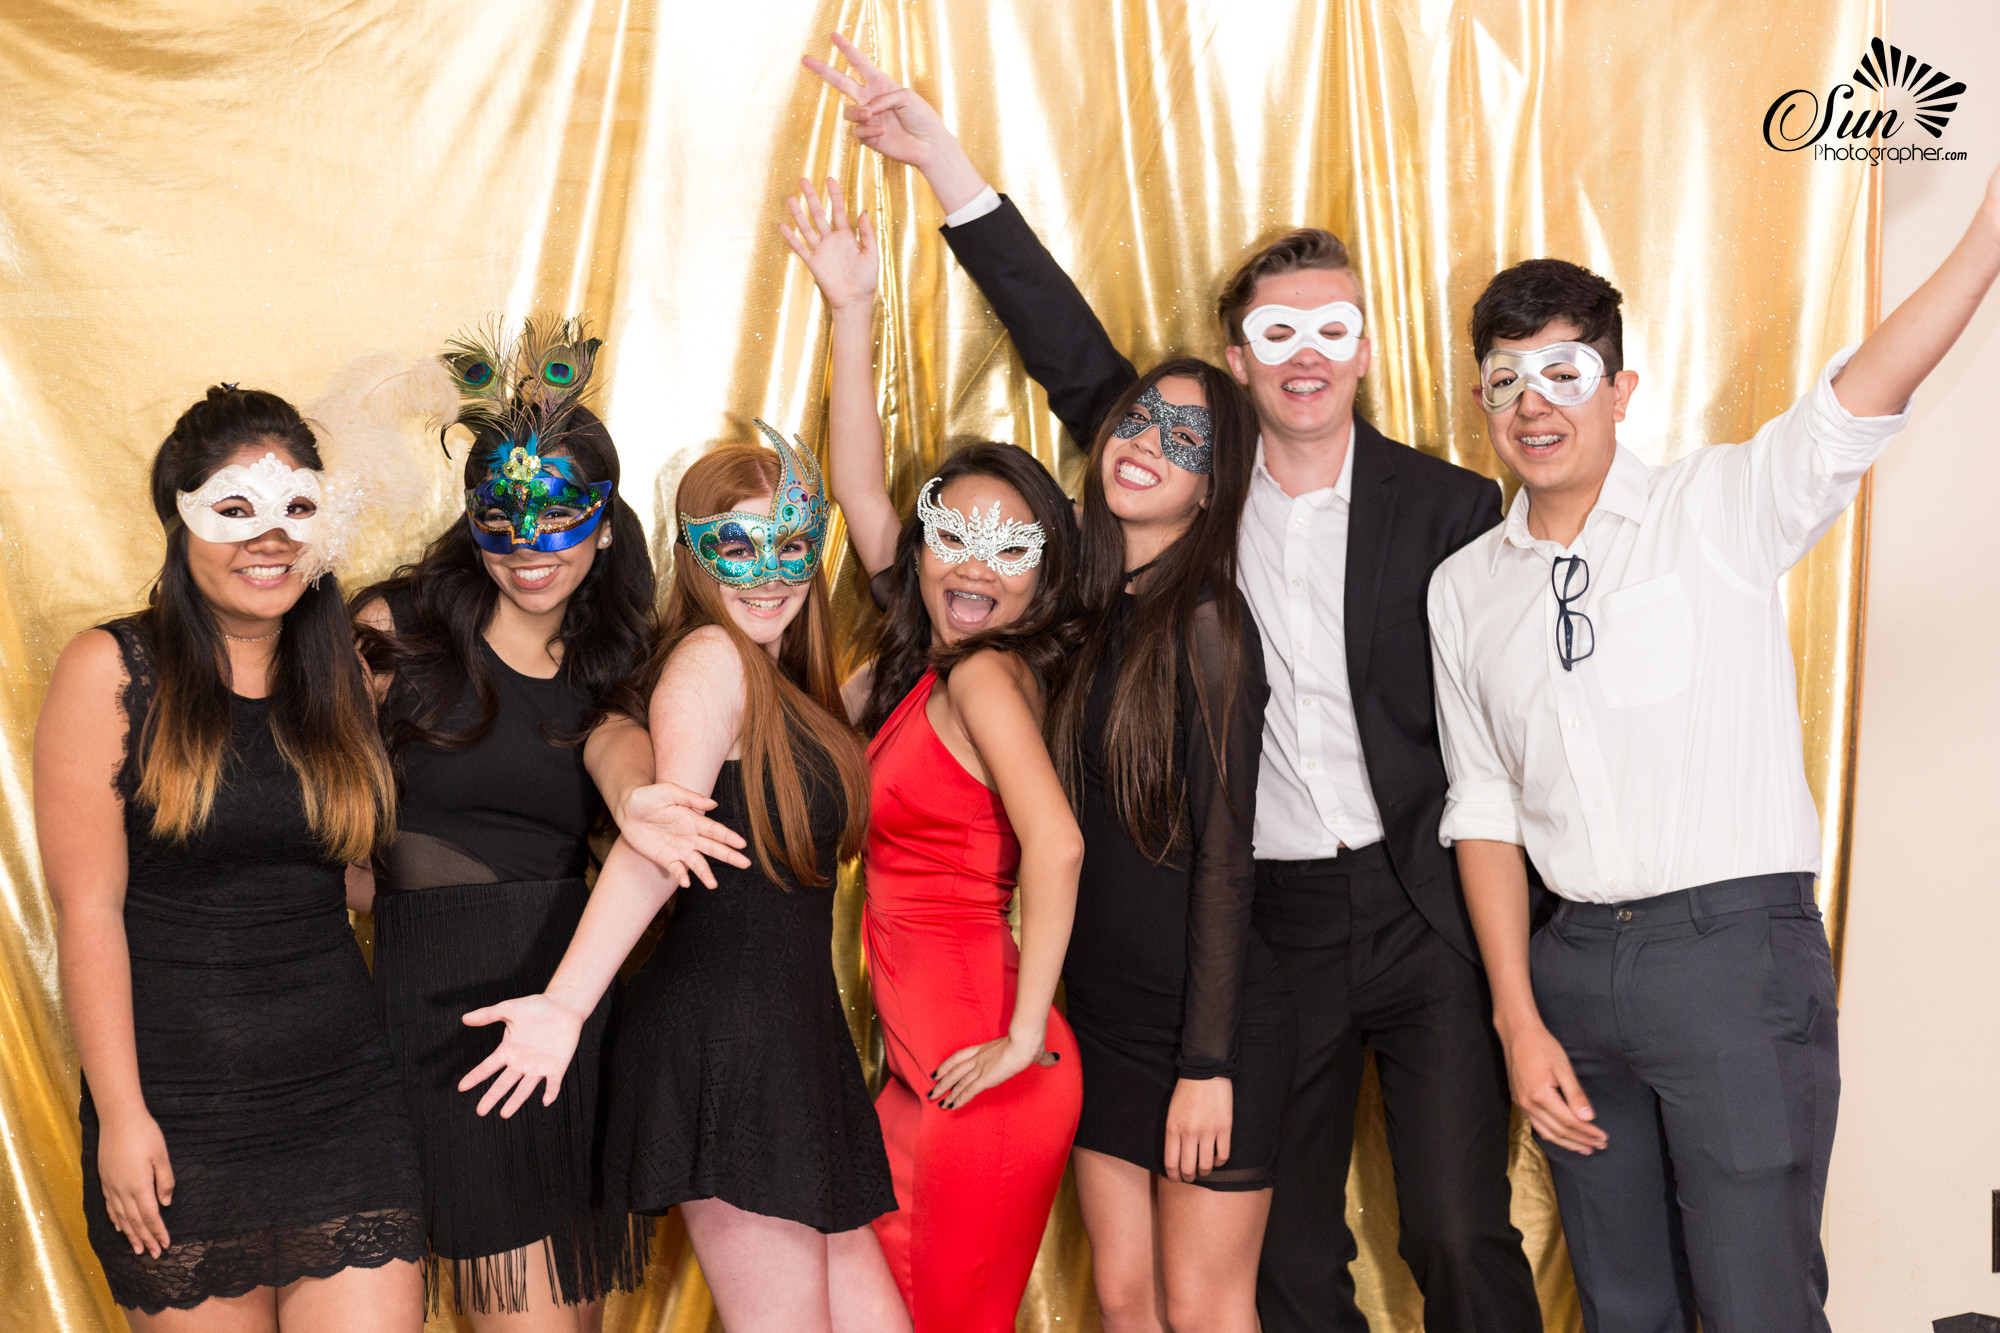 Birthday party and event photo